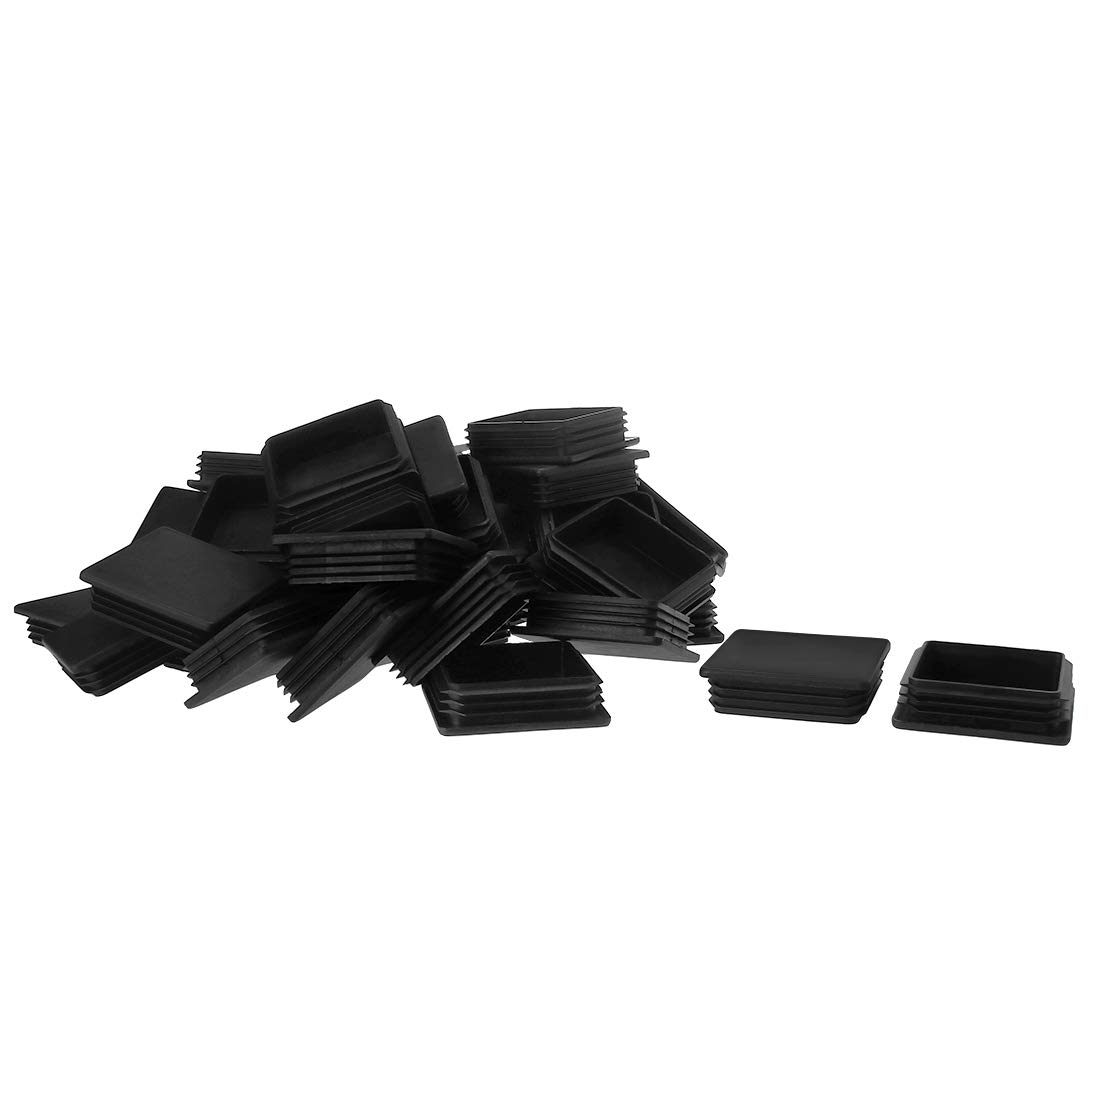 uxcell 40pcs 75 x 75mm Plastic Square Ribbed Tube Inserts End Cover Cap, for 2.83'' to 2.91'' Inner Size, Furniture Chair Table Feet Floor Protector